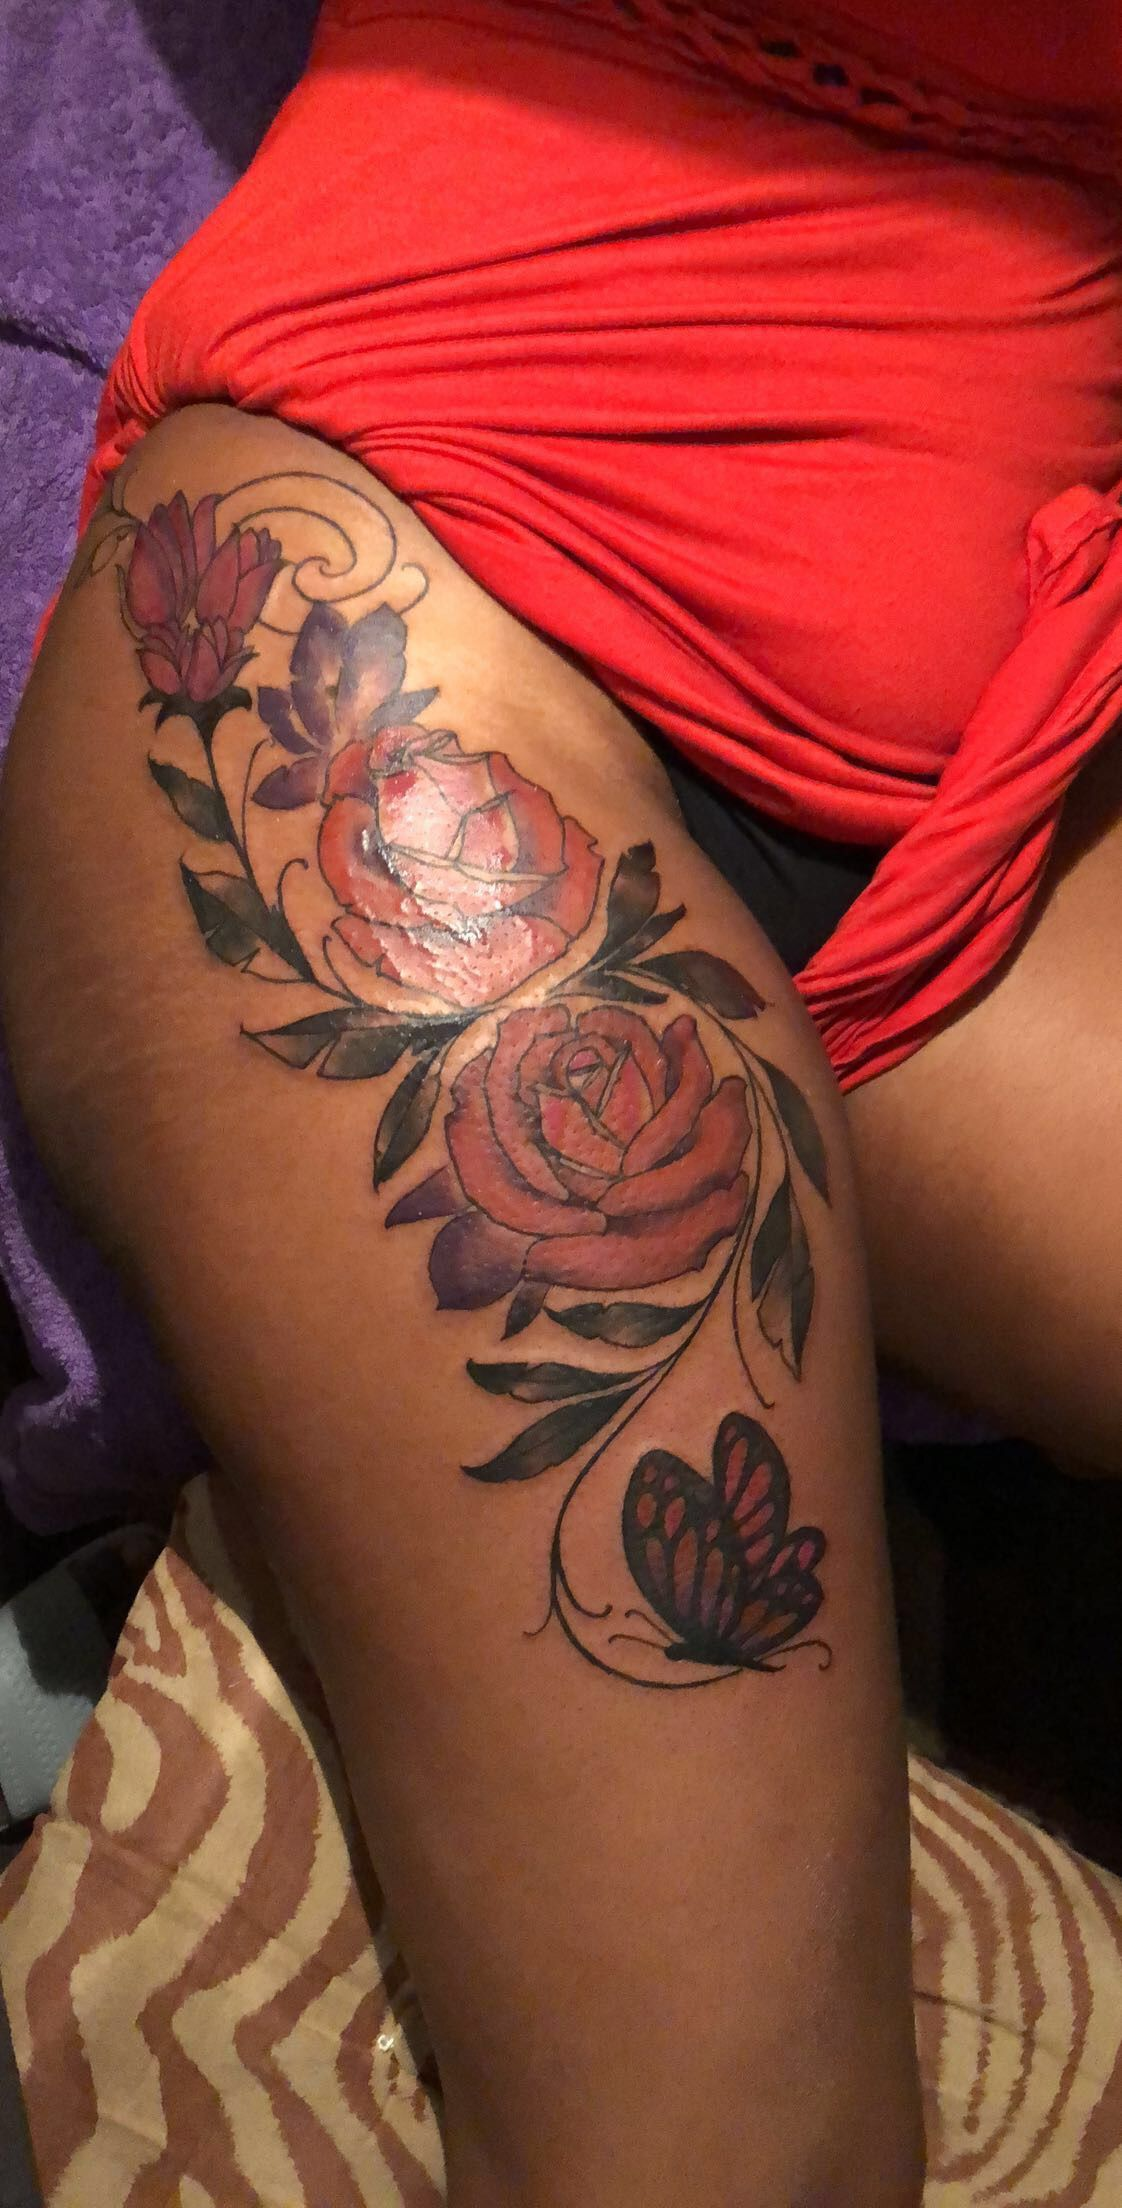 Floral thigh tattoo by chowderluciano on instagram